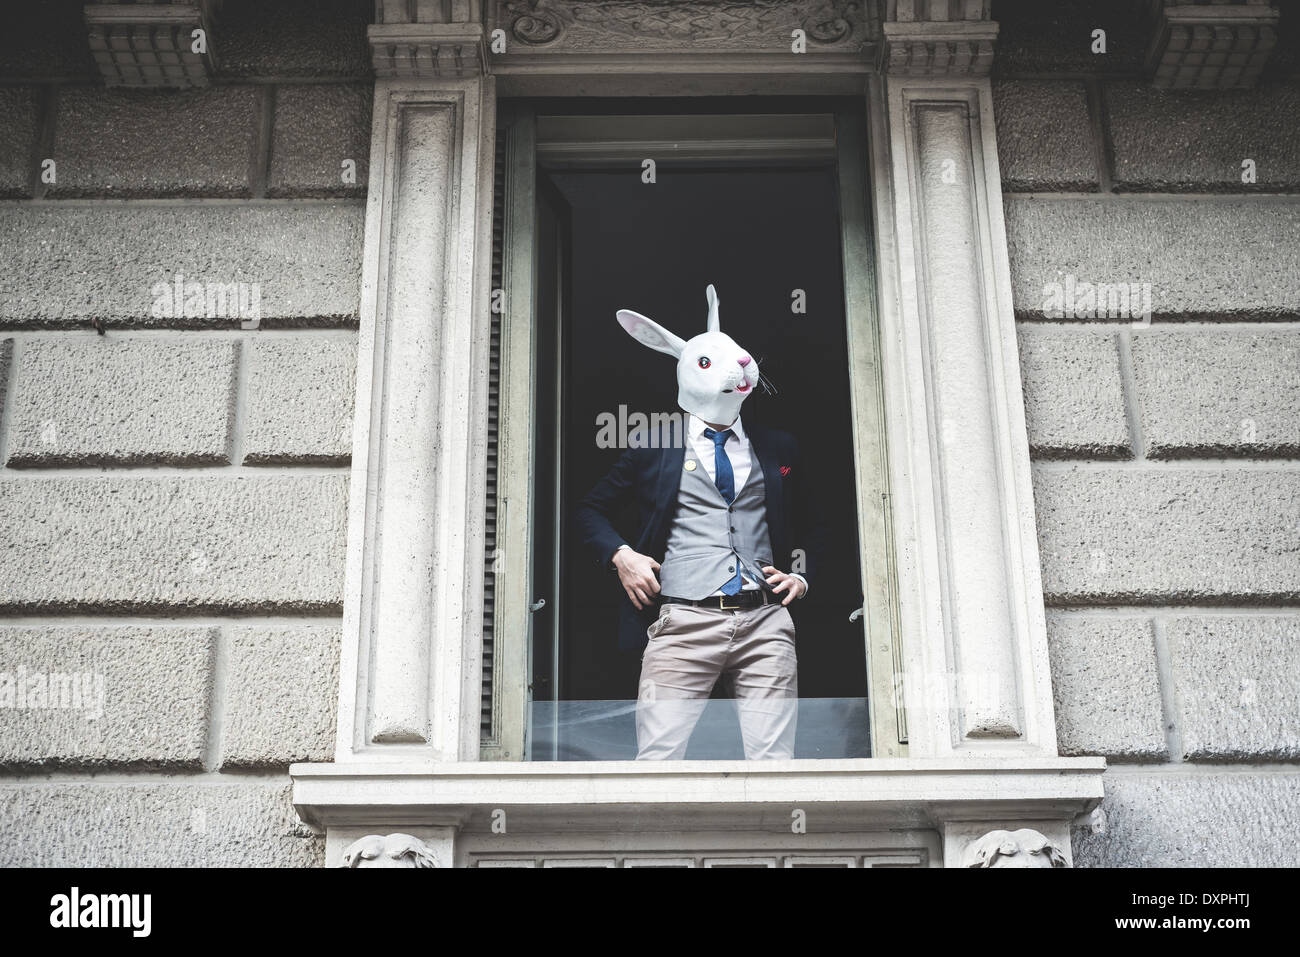 rabbit mask man appeared at the window in the city - Stock Image